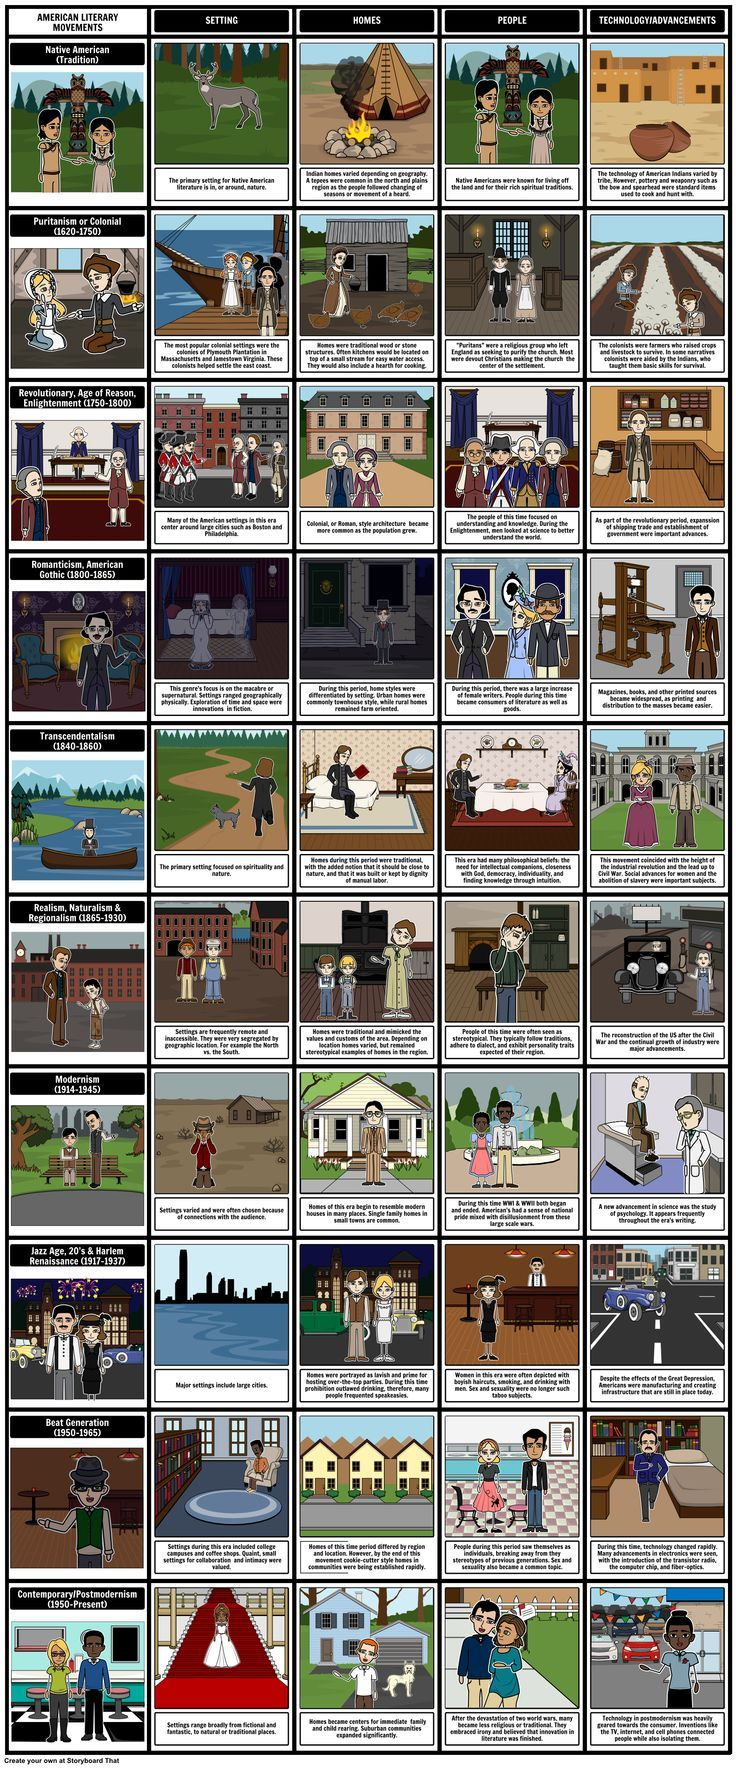 American Literary Movements - American Literary Periods Analysis: Using a multi-cell storyboard, students should examine American Literature and American Authors to analyze the literary periods that make up the various American Literary Movements.